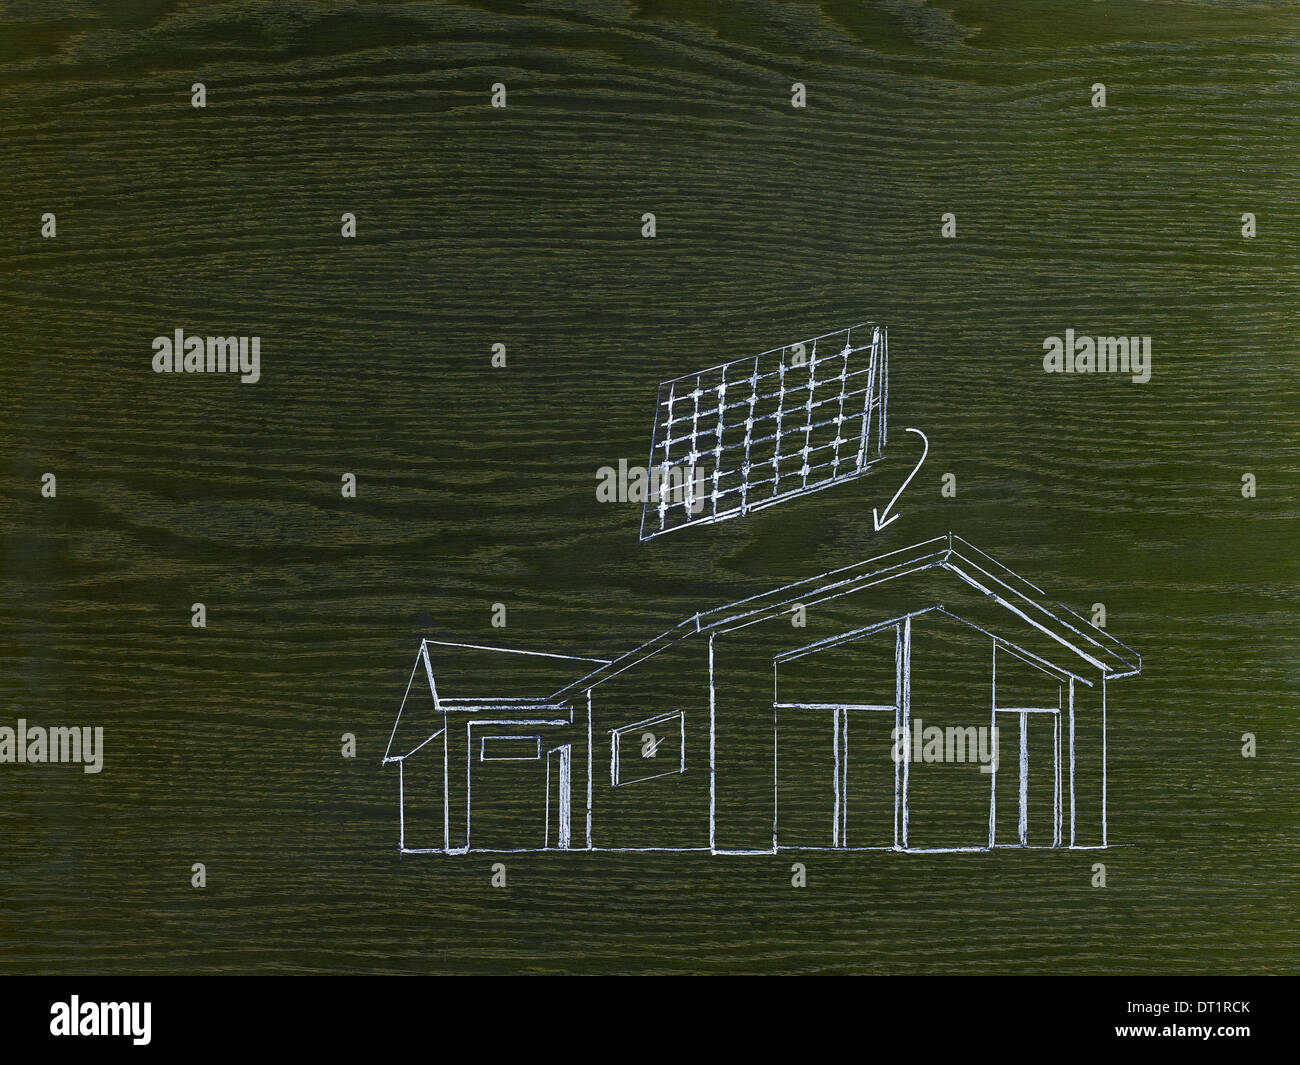 A line drawing image on grained wood A green building project a house with solar panels for the roof - Stock Image